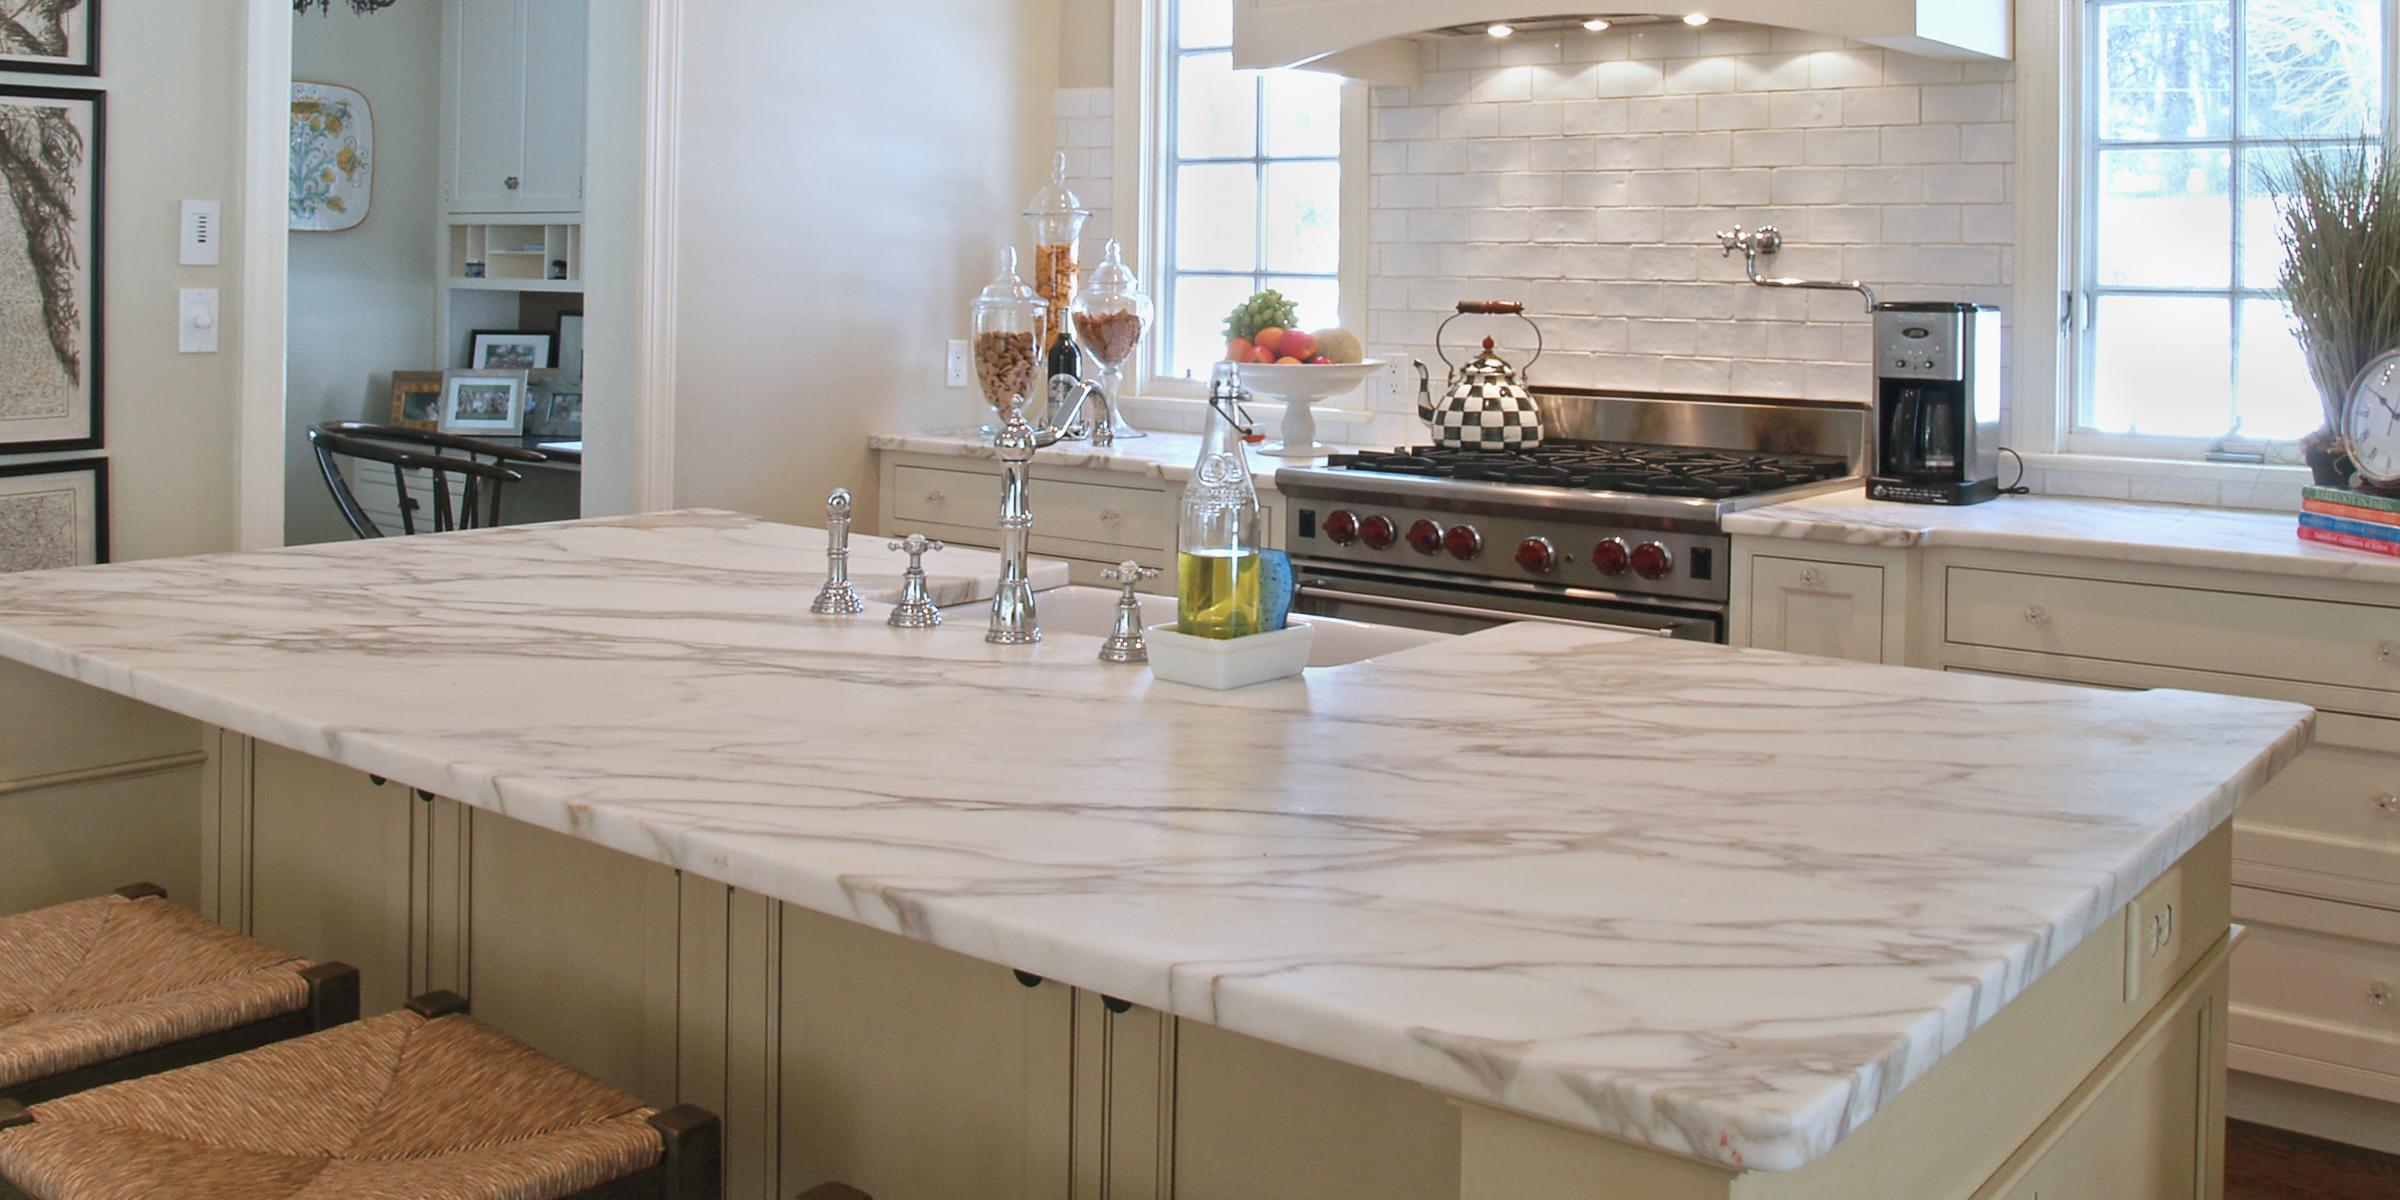 Interesting facts about quartz countertops